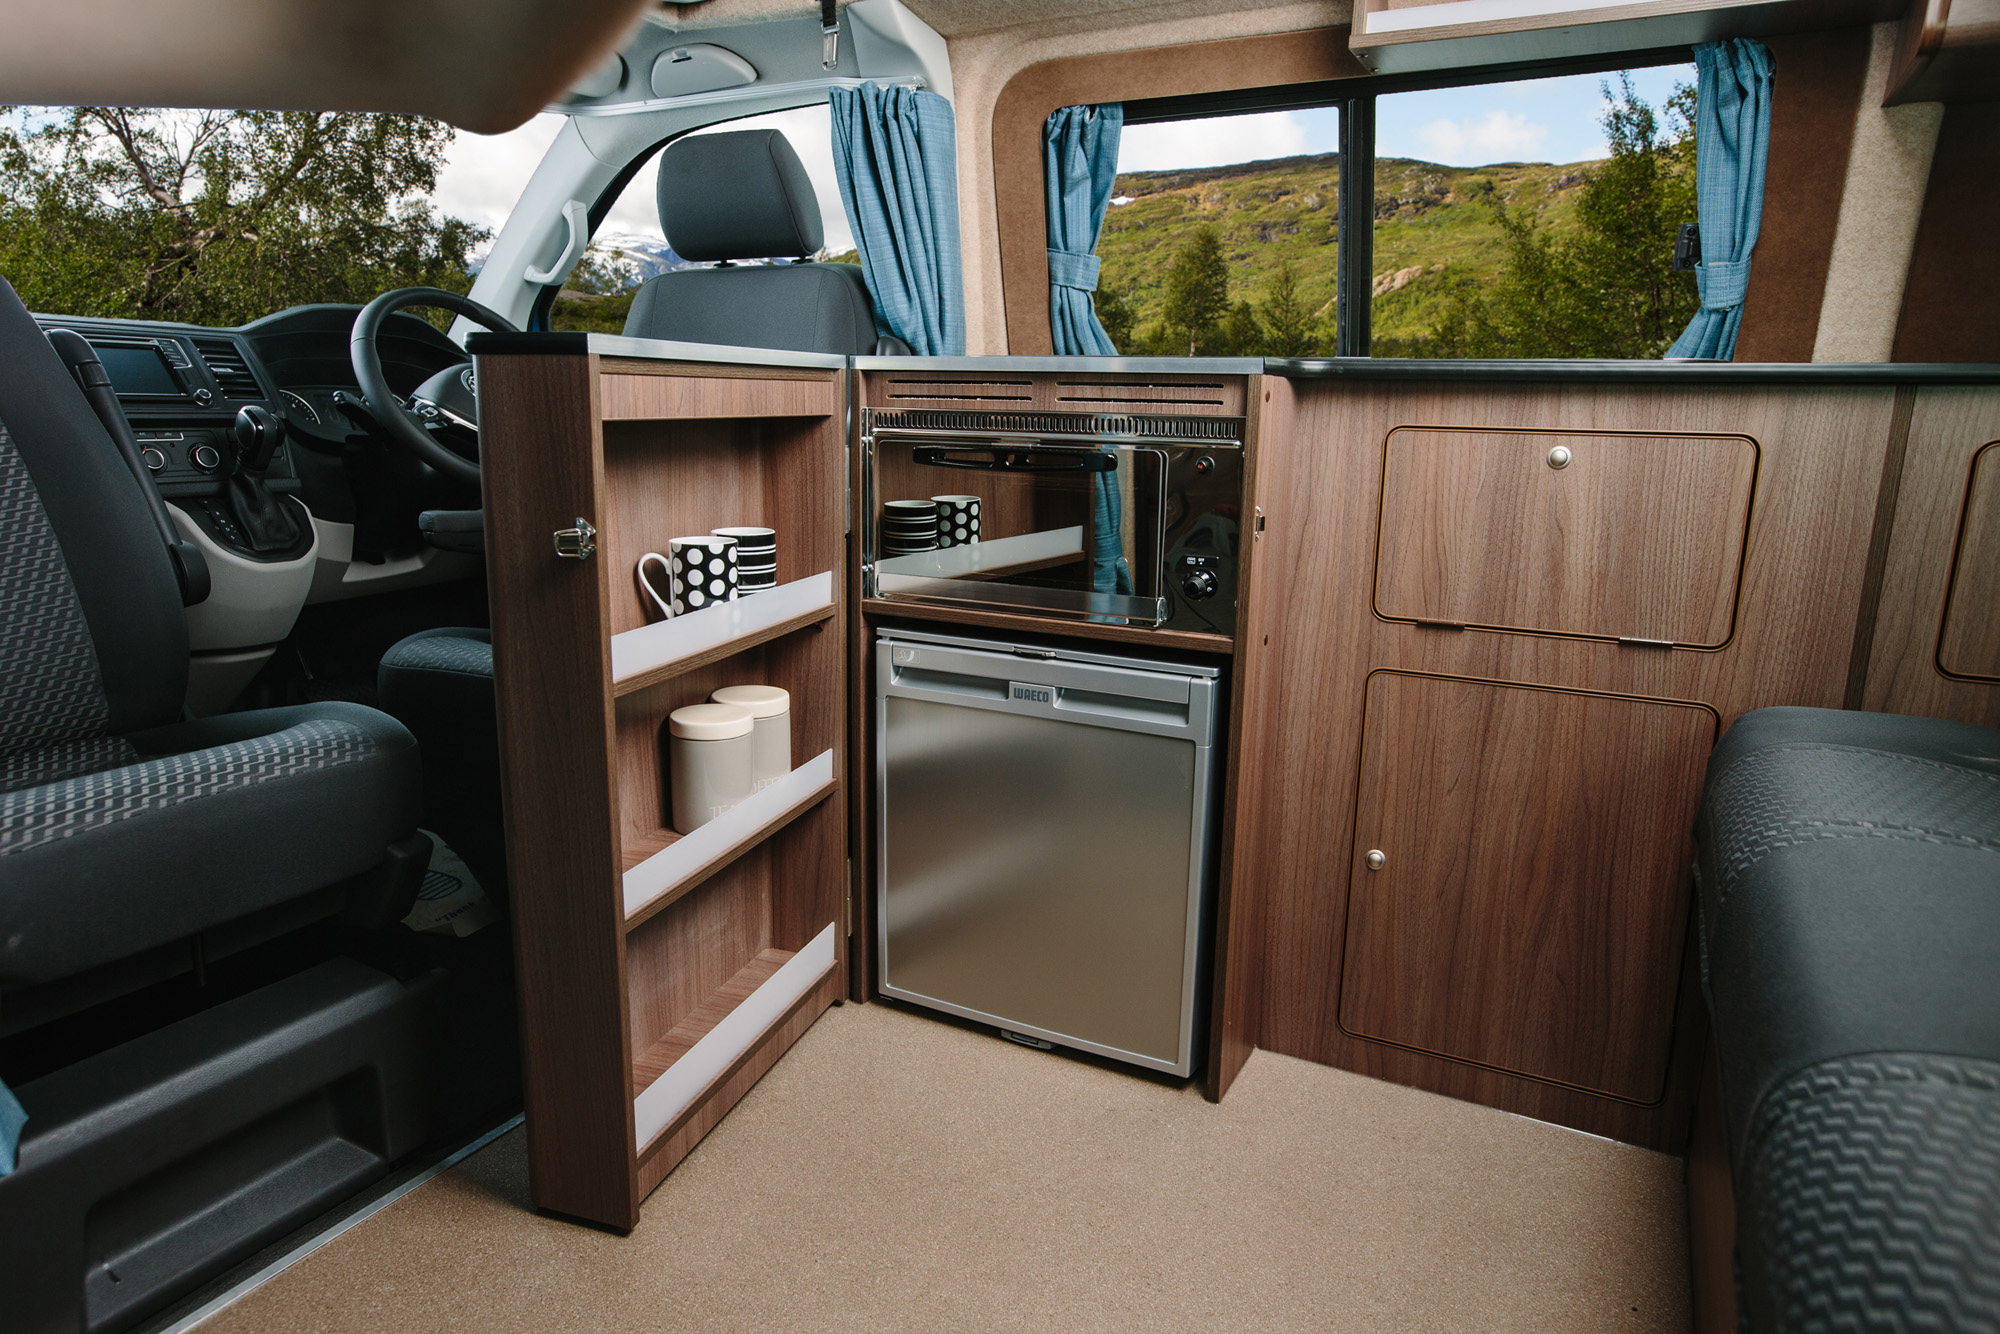 Heres A List Of Features You Can Expect To See In Our VW T6 Birchover Campervan Conversion